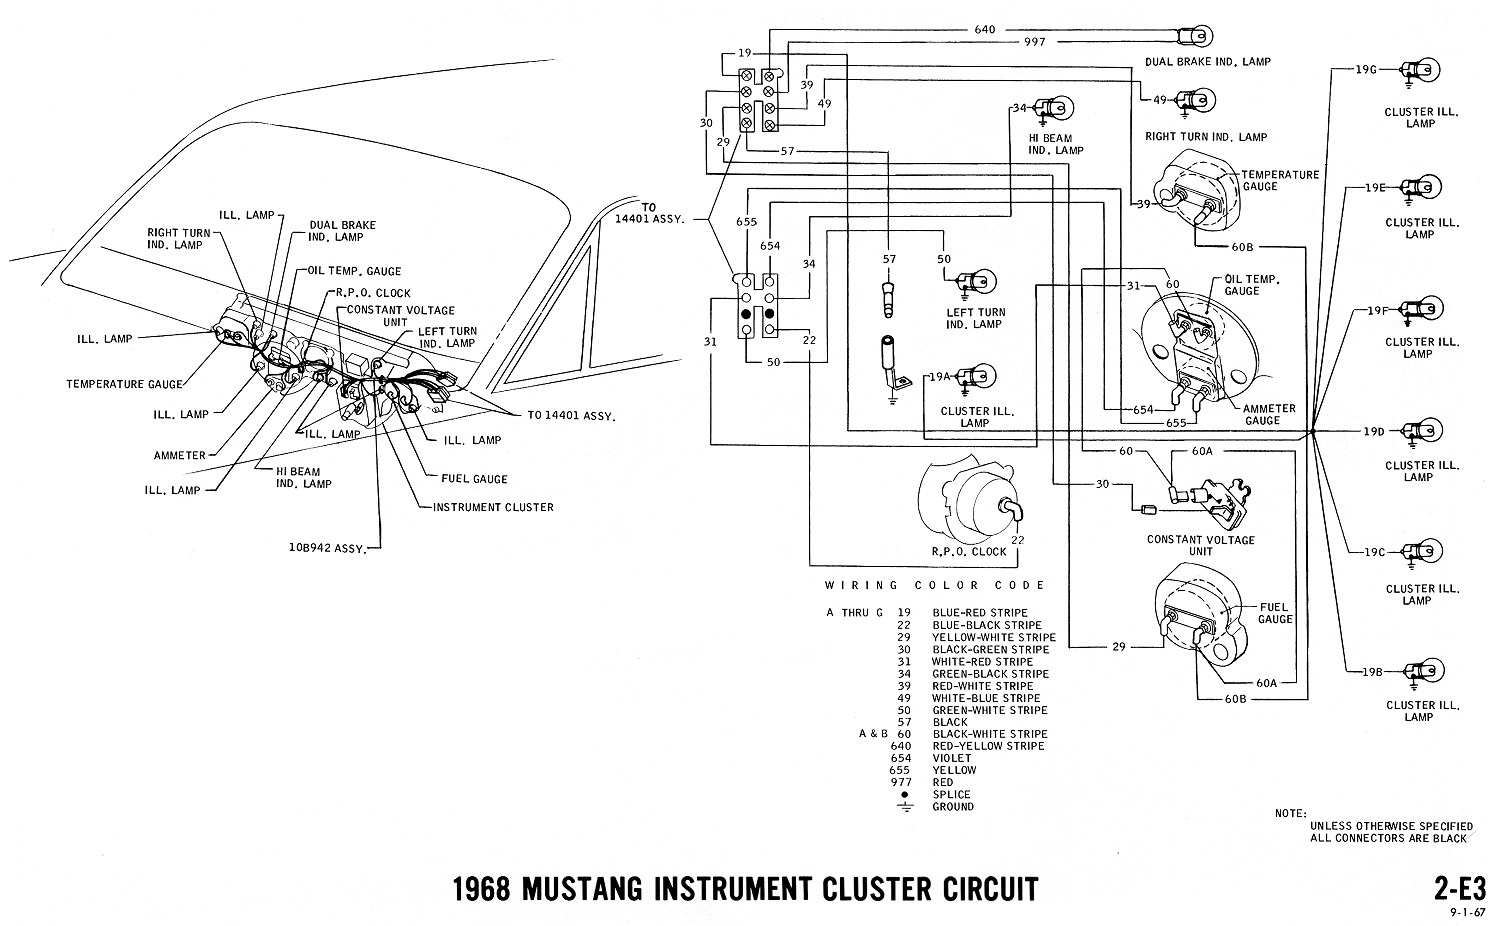 1968 Mustang Wiring Diagrams And Vacuum Schematics Average Joe Led Lights Ac Diagram Instruments